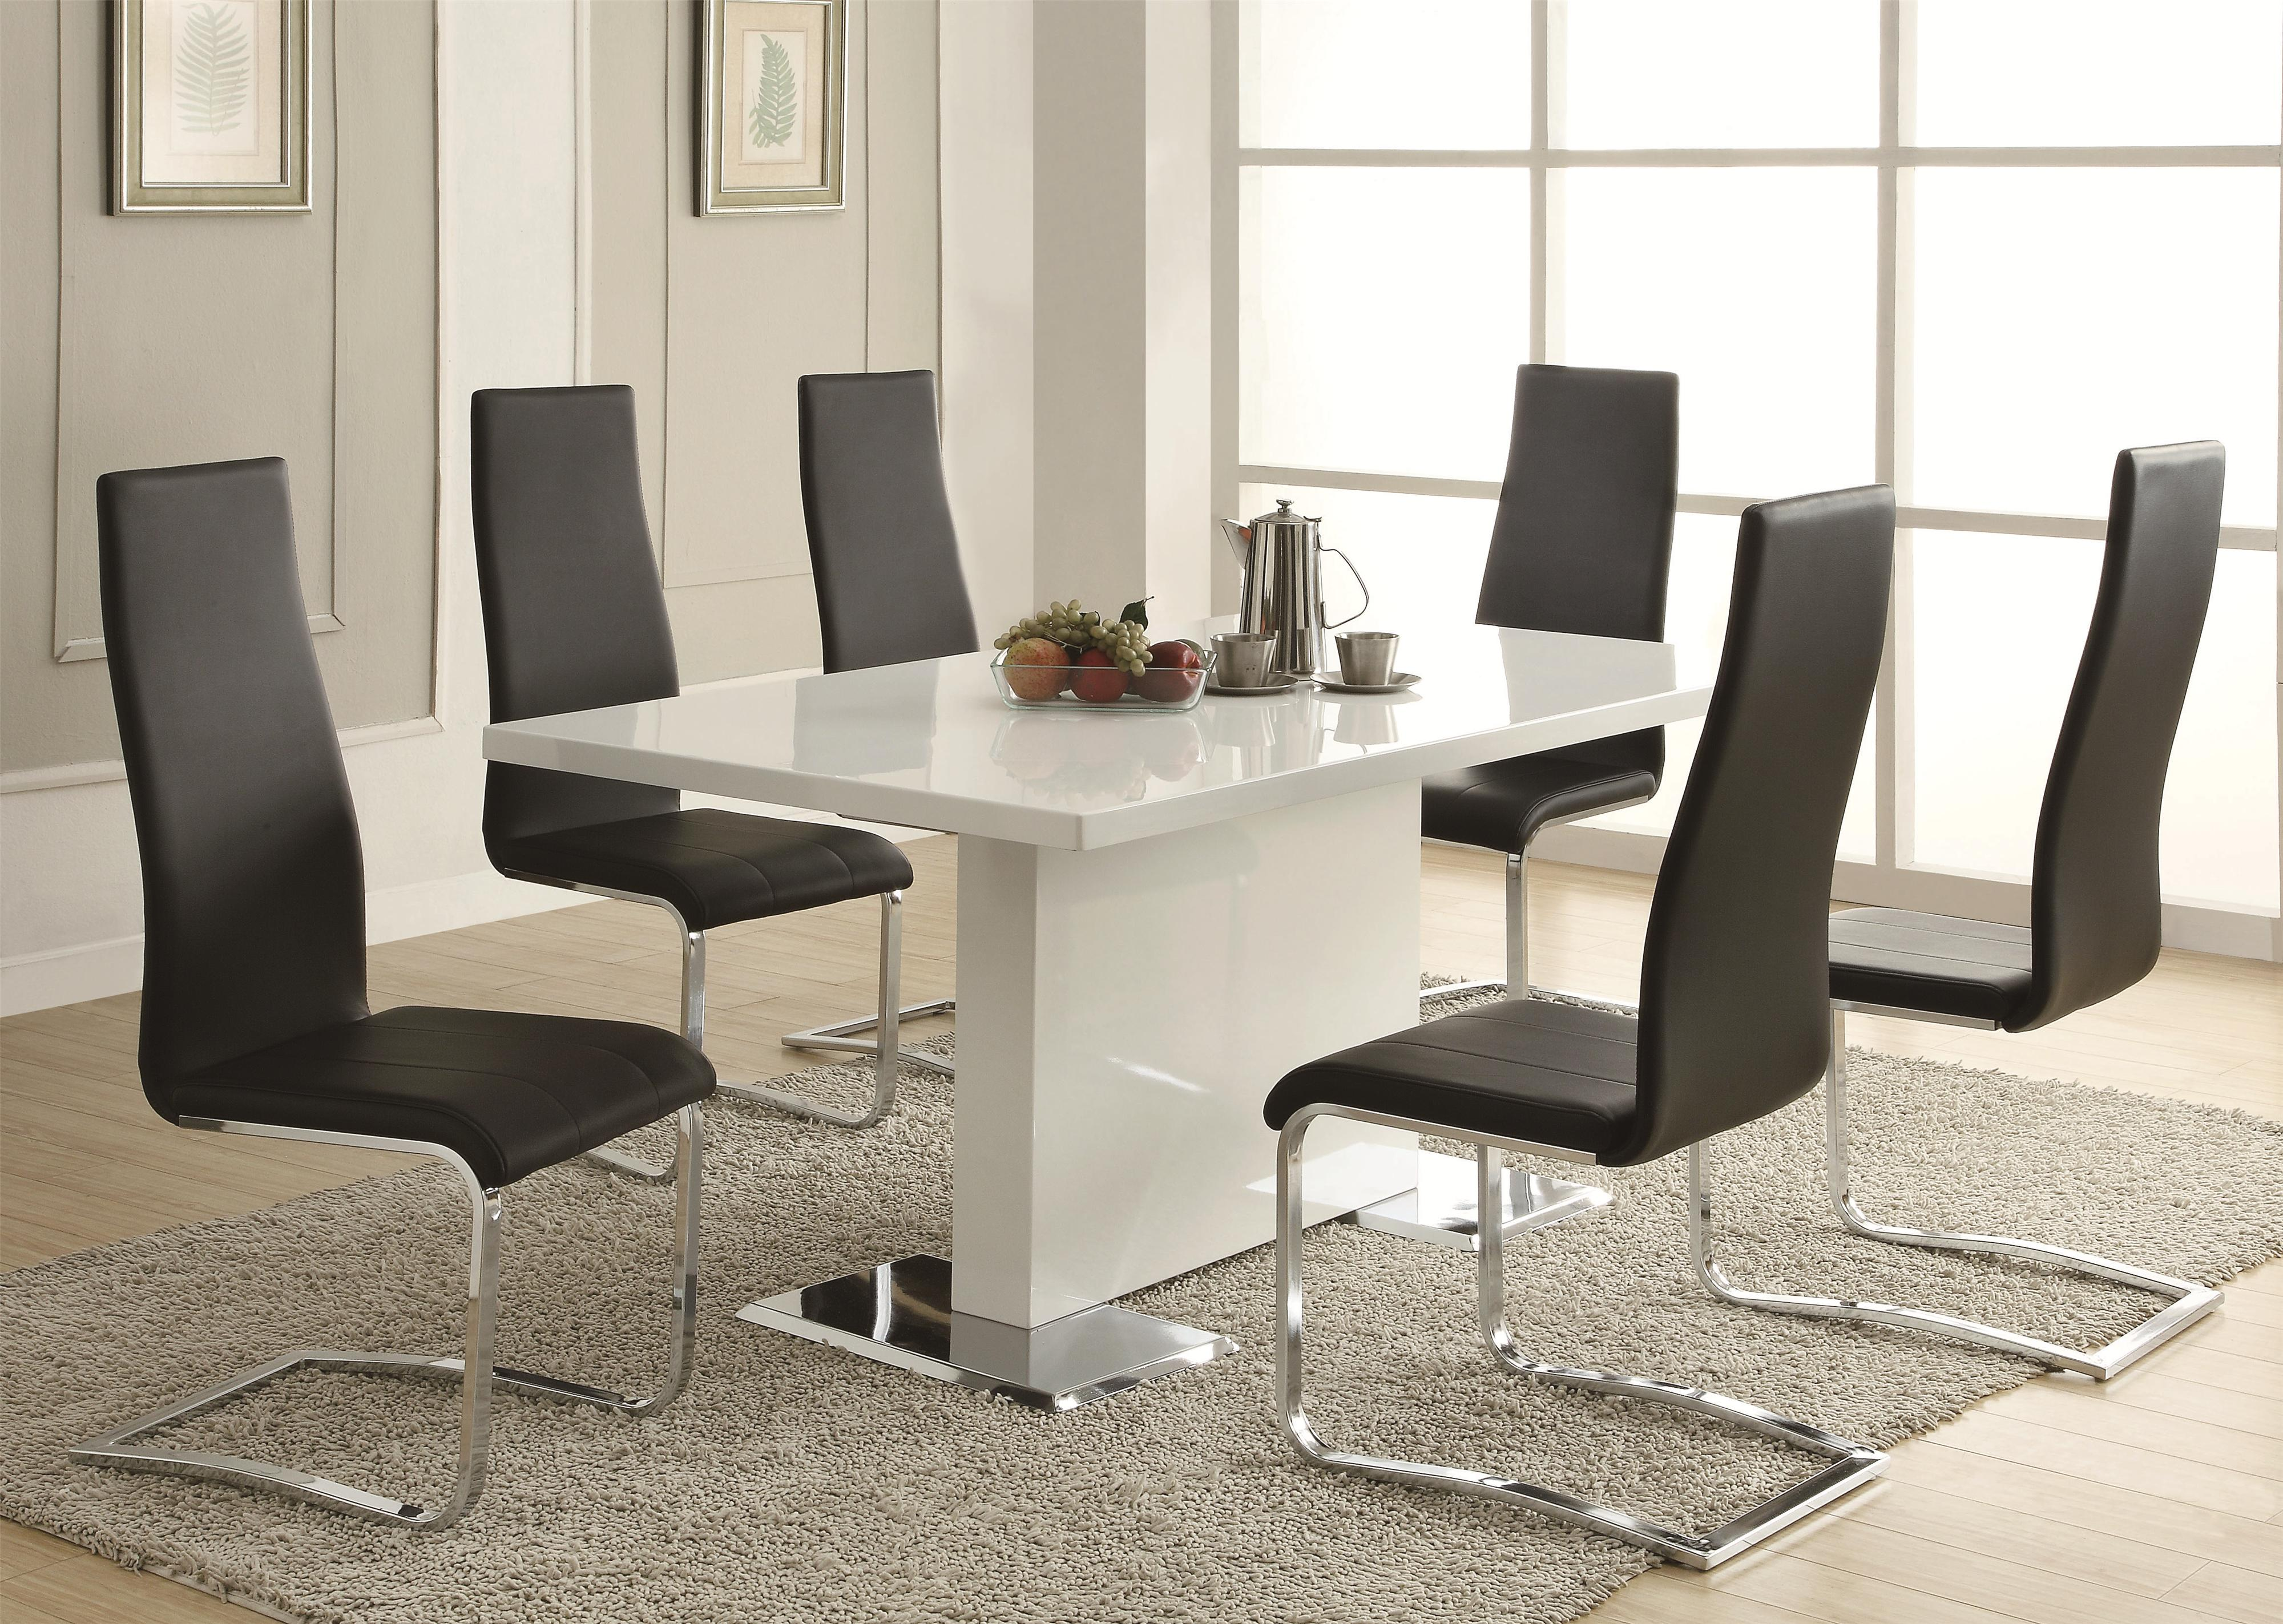 Coaster modern dining contemporary dining room set with glass table coaster fine furniture